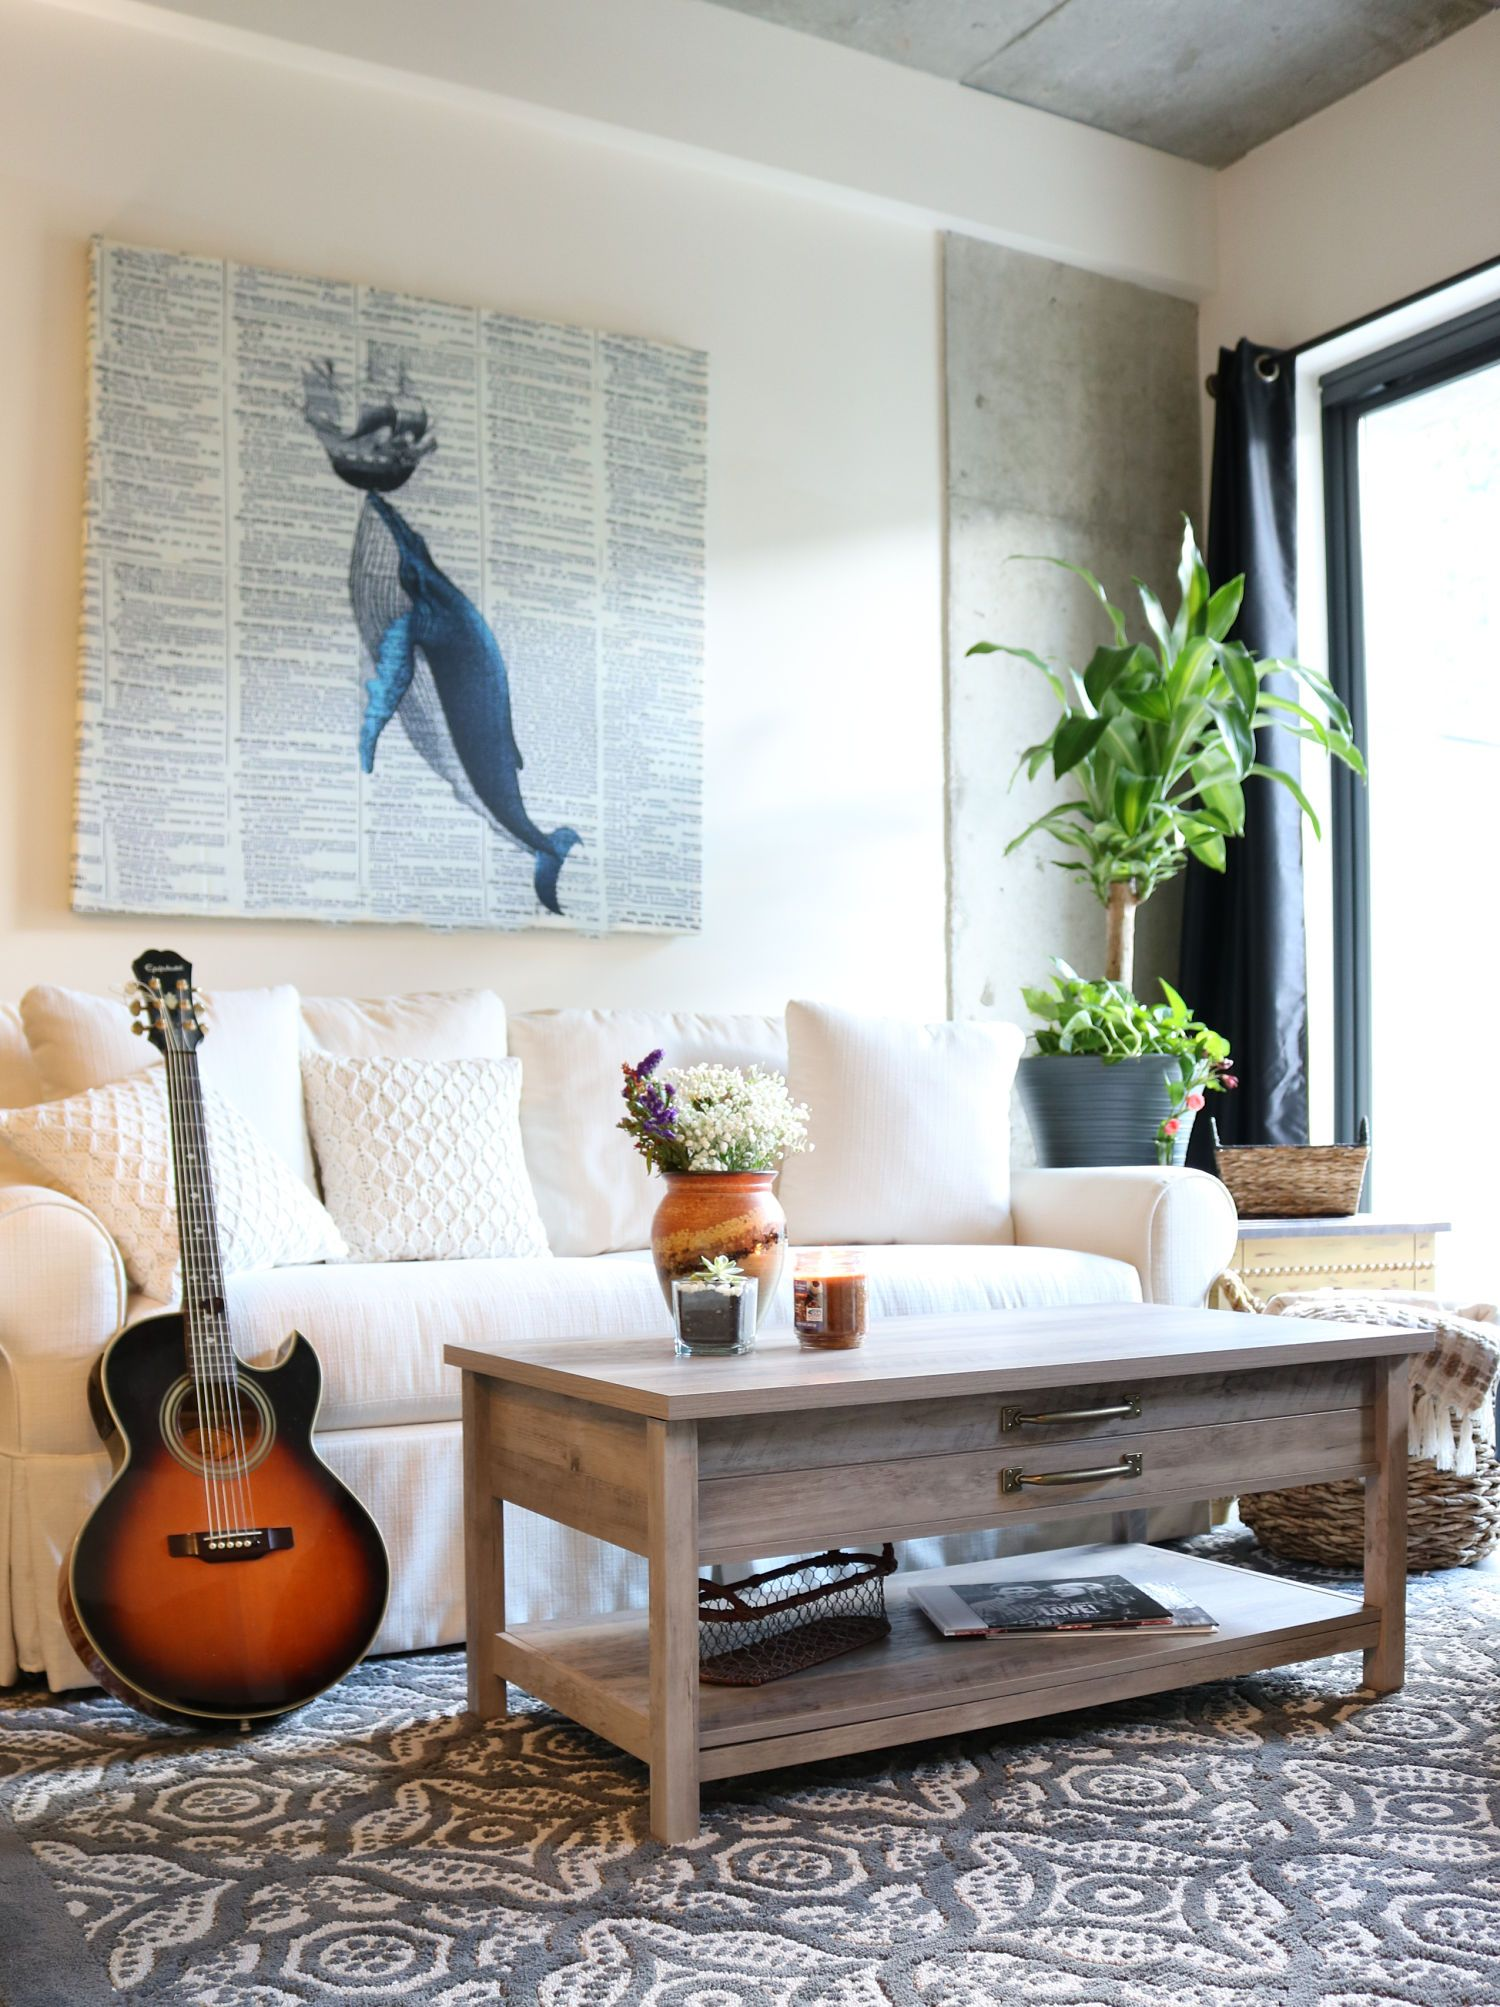 Living Room Decor Ideas   Affordable Ideas For Your Small Apartment Minimal  But Warm And Welcoming #bhg #ad #apartments #smallspaces